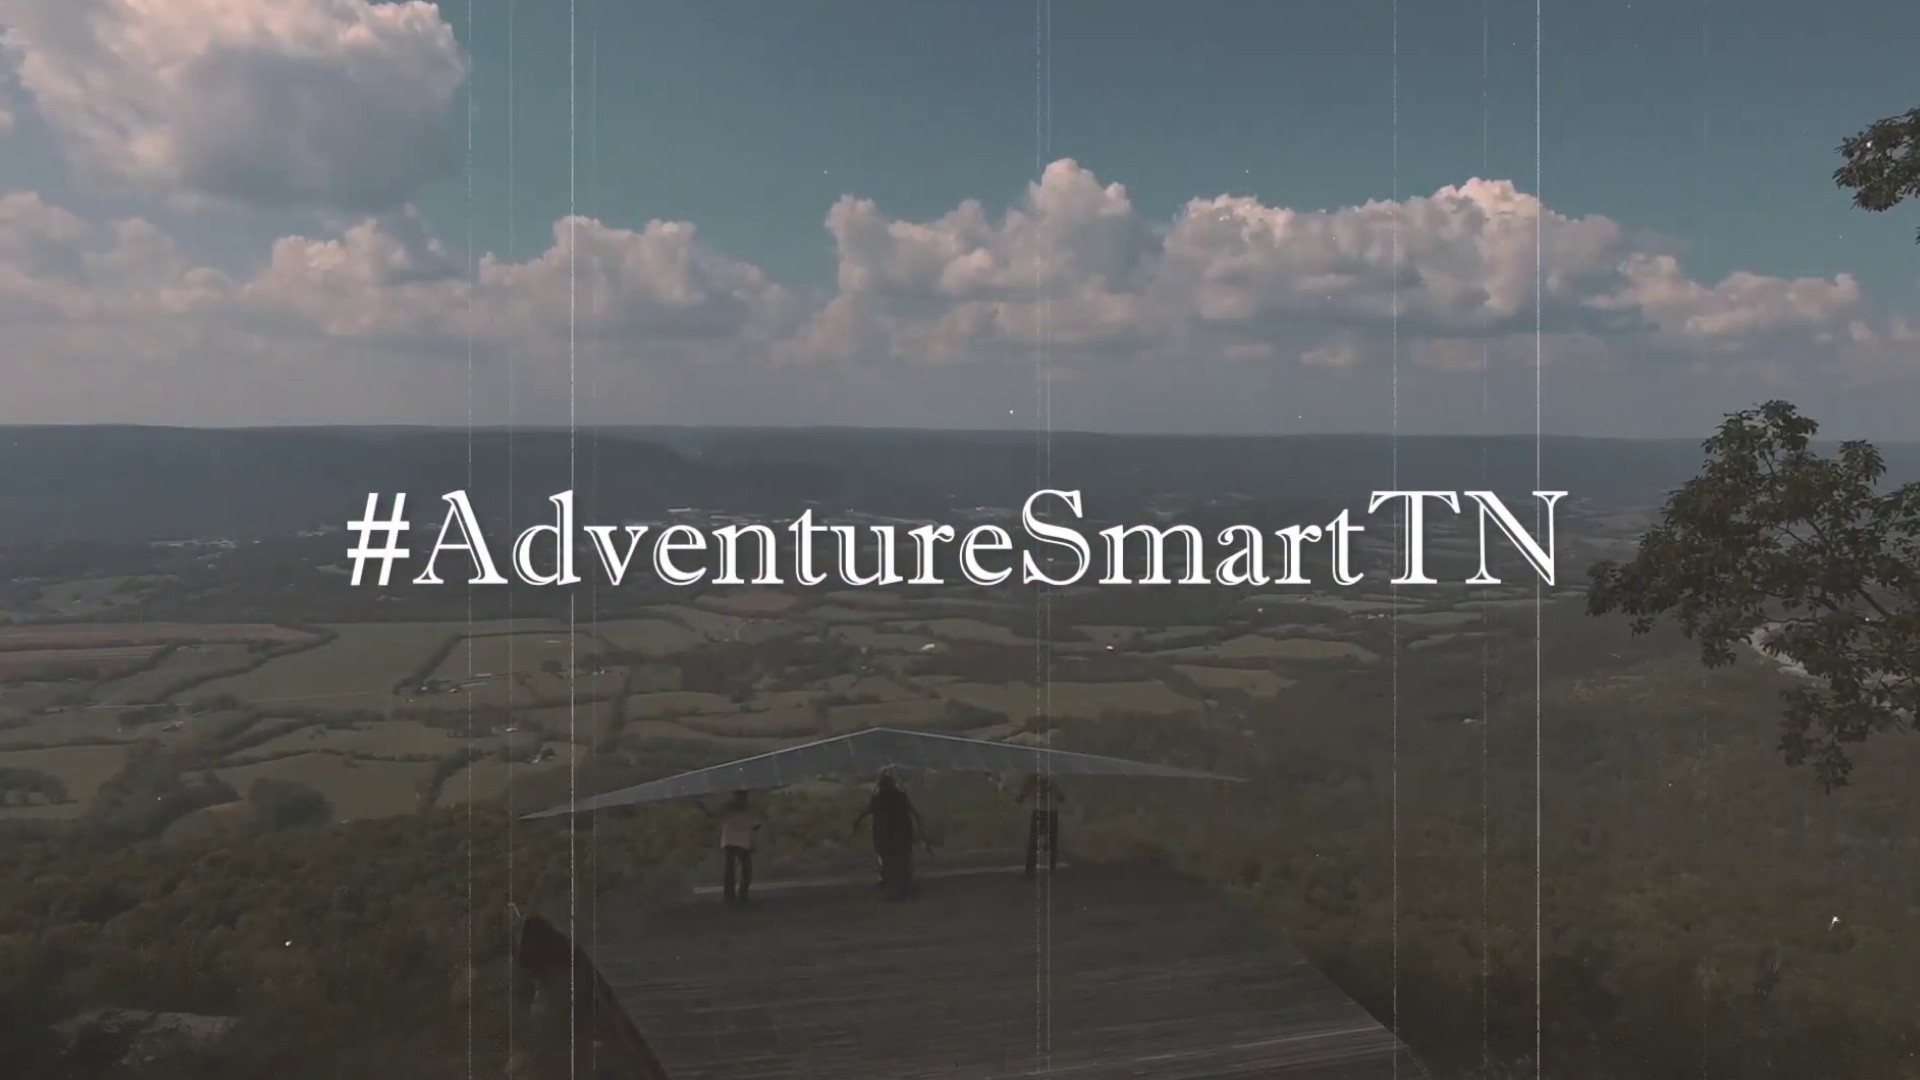 Outdoor Adventure Smart Campaign, Southeast Tennessee